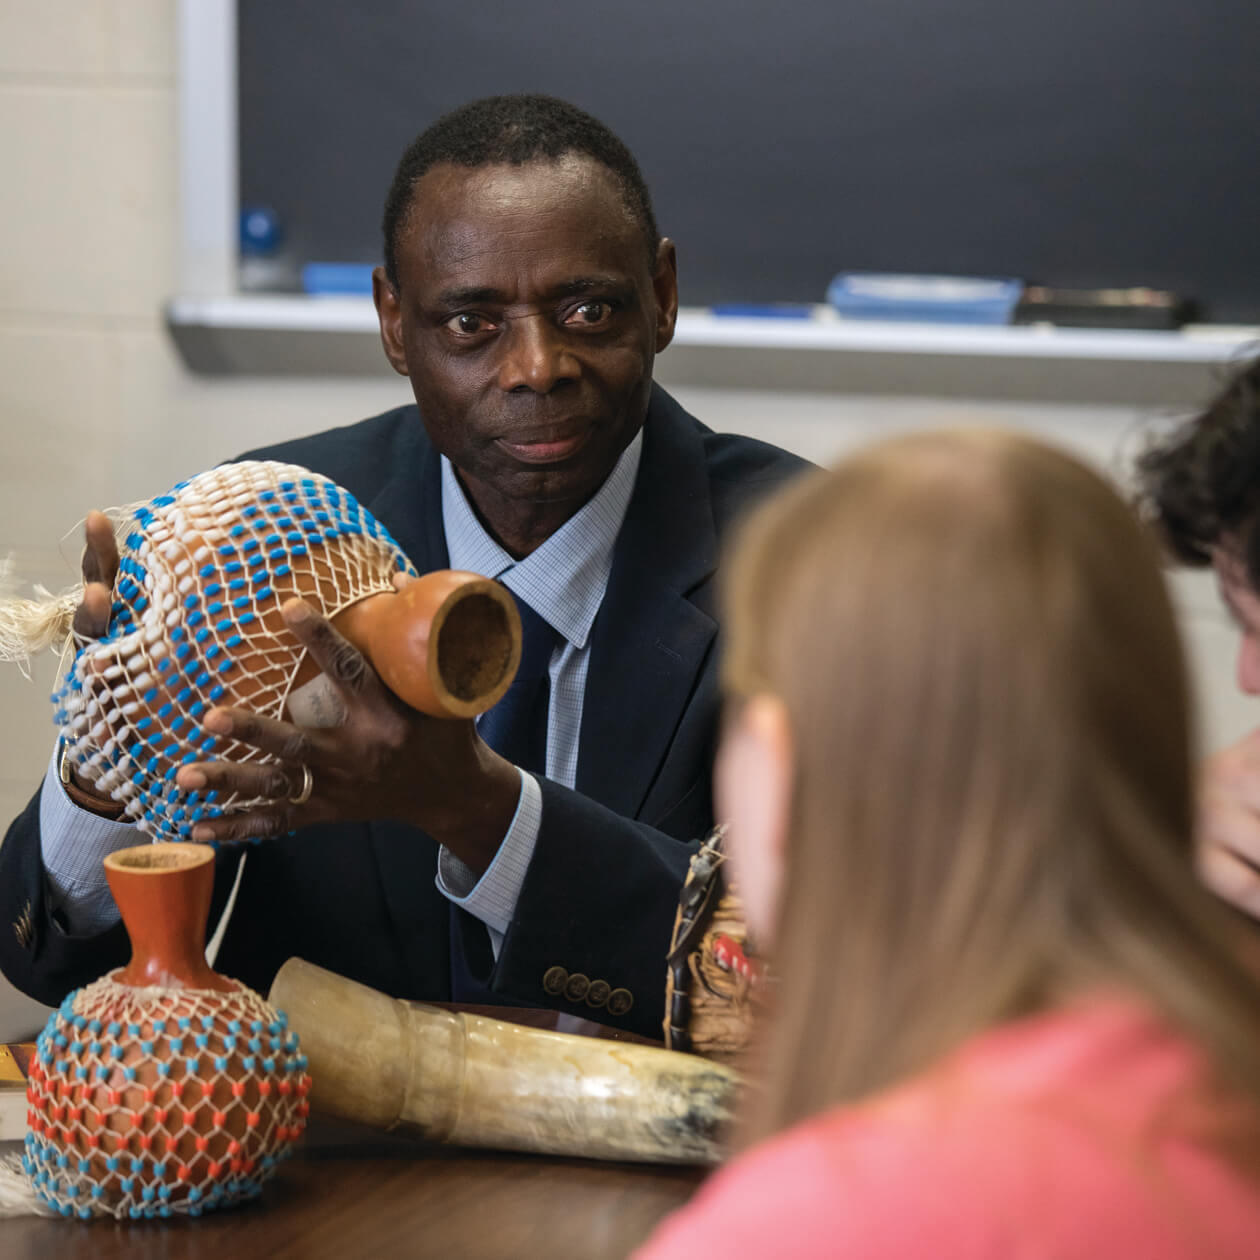 History professor with artifacts